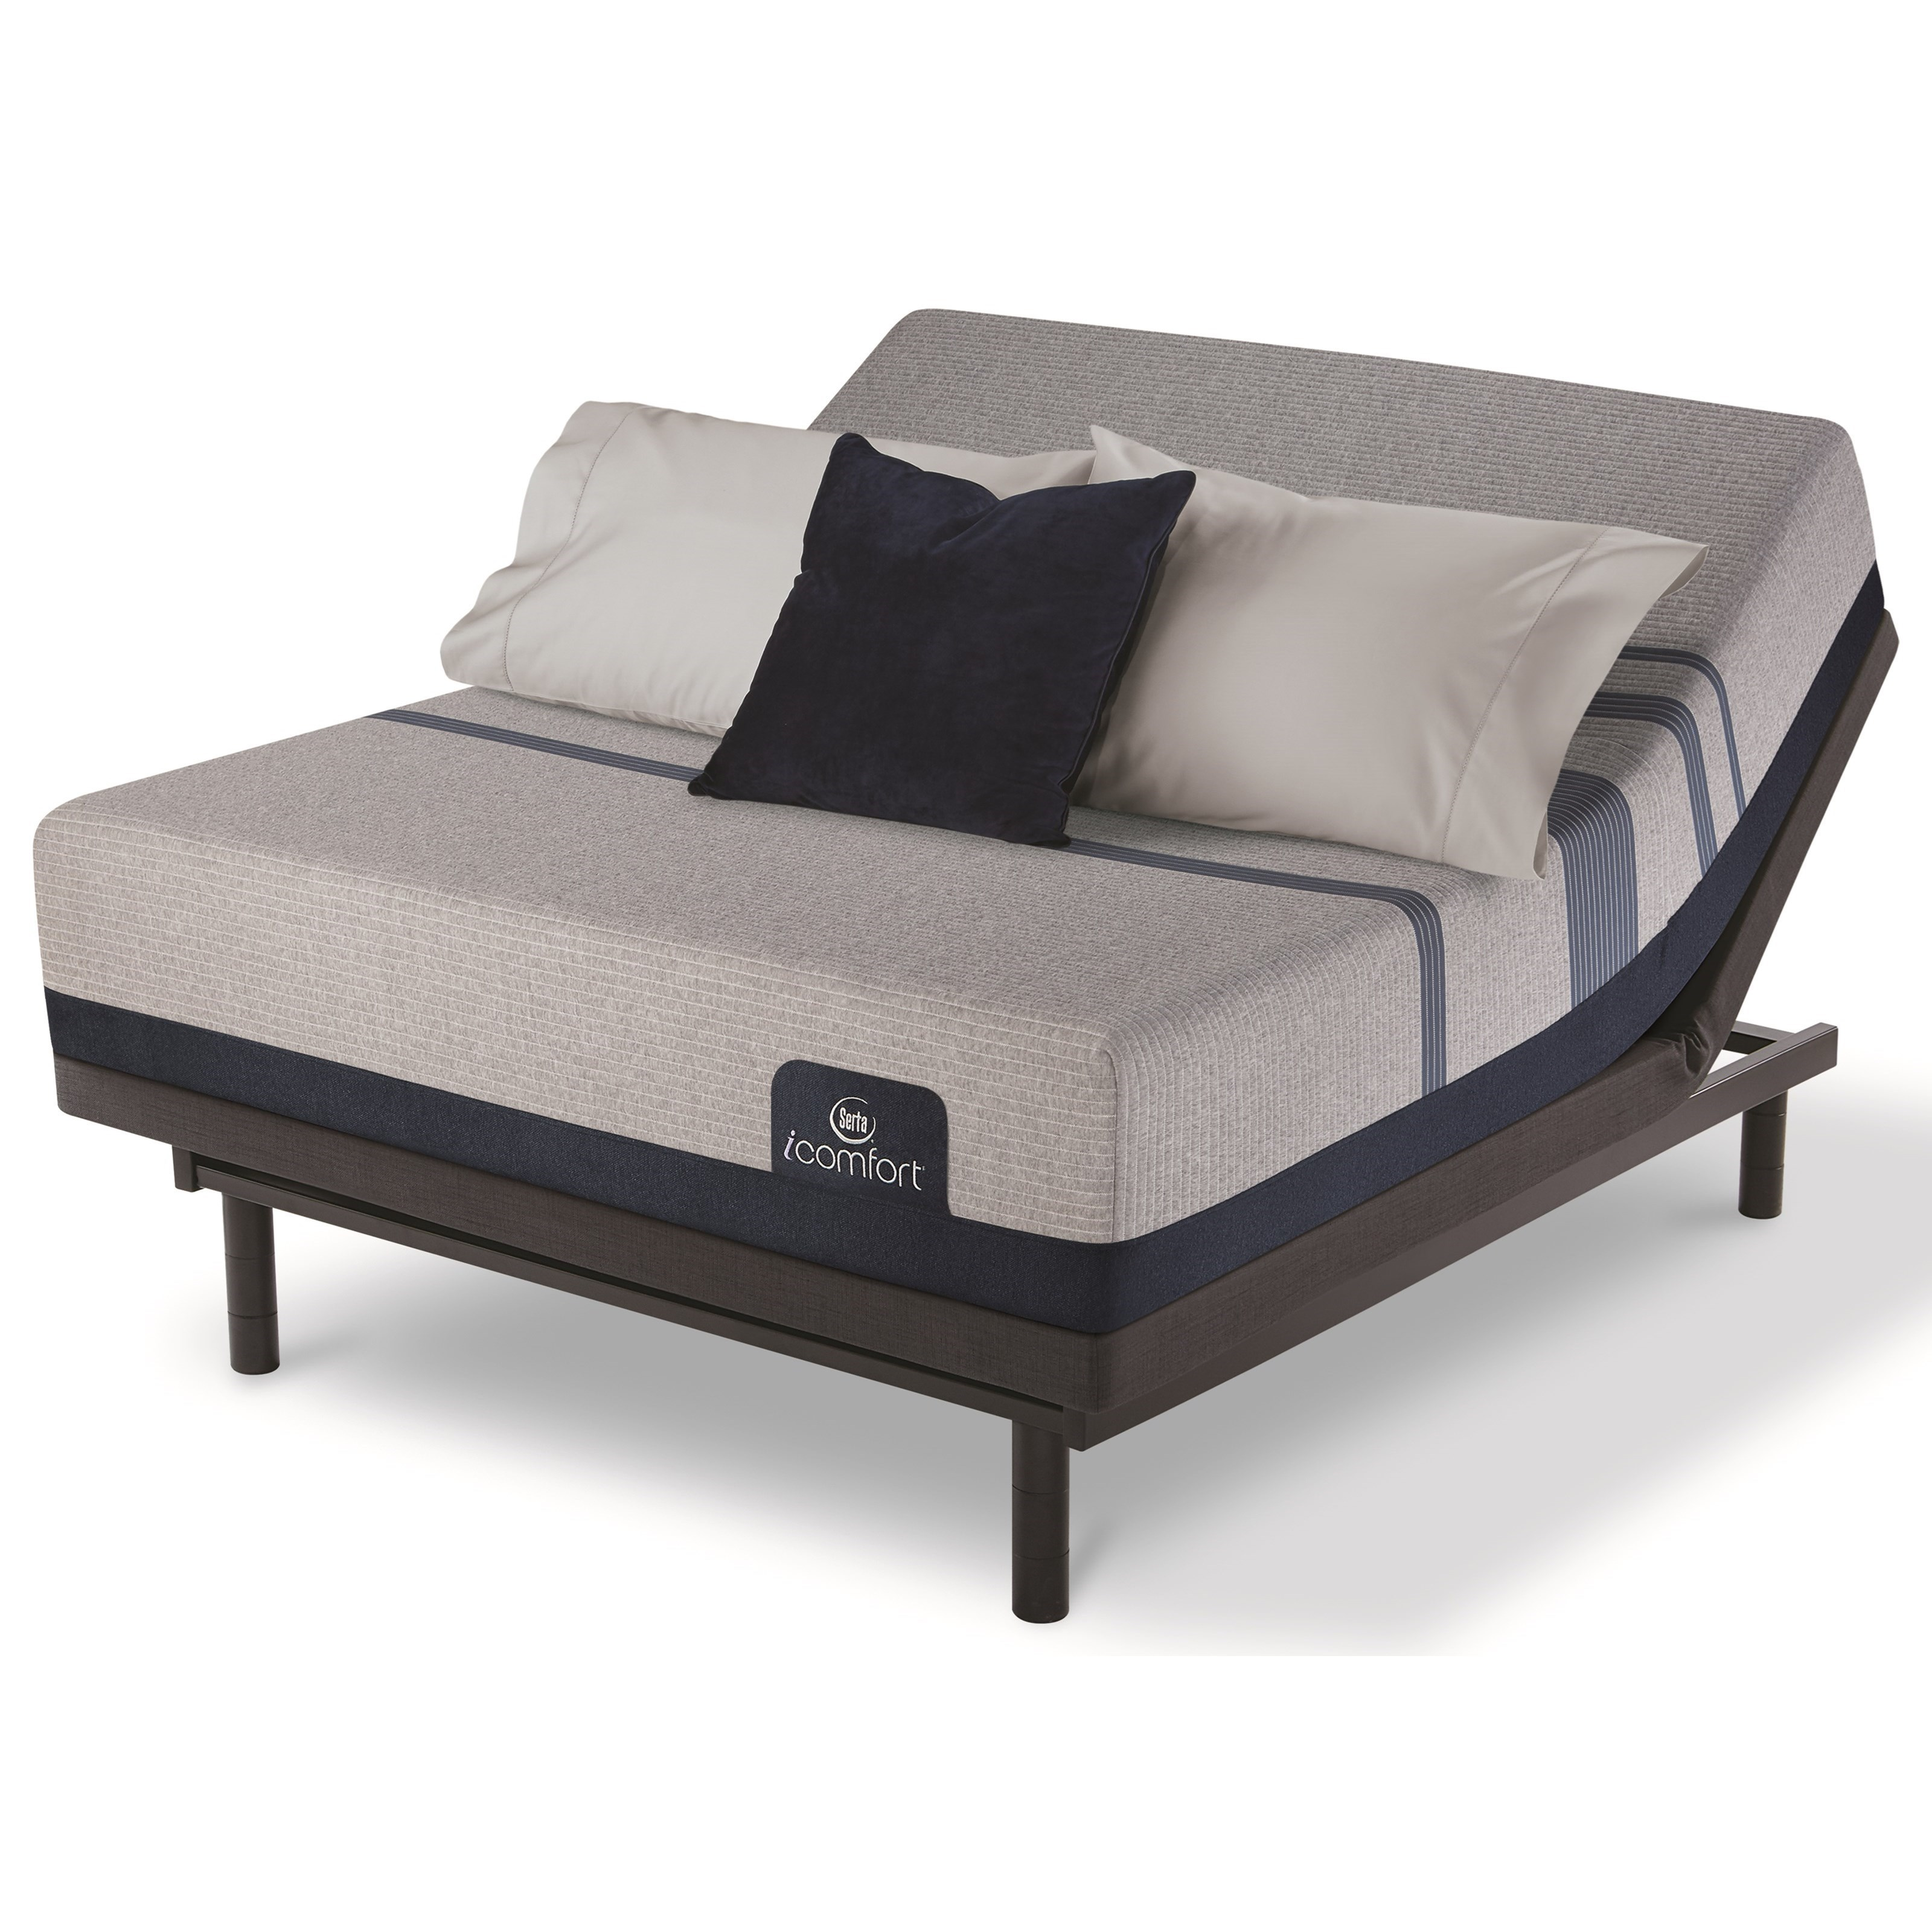 pdp blue mattress bed cart living california max to icomfort spaces king added plush